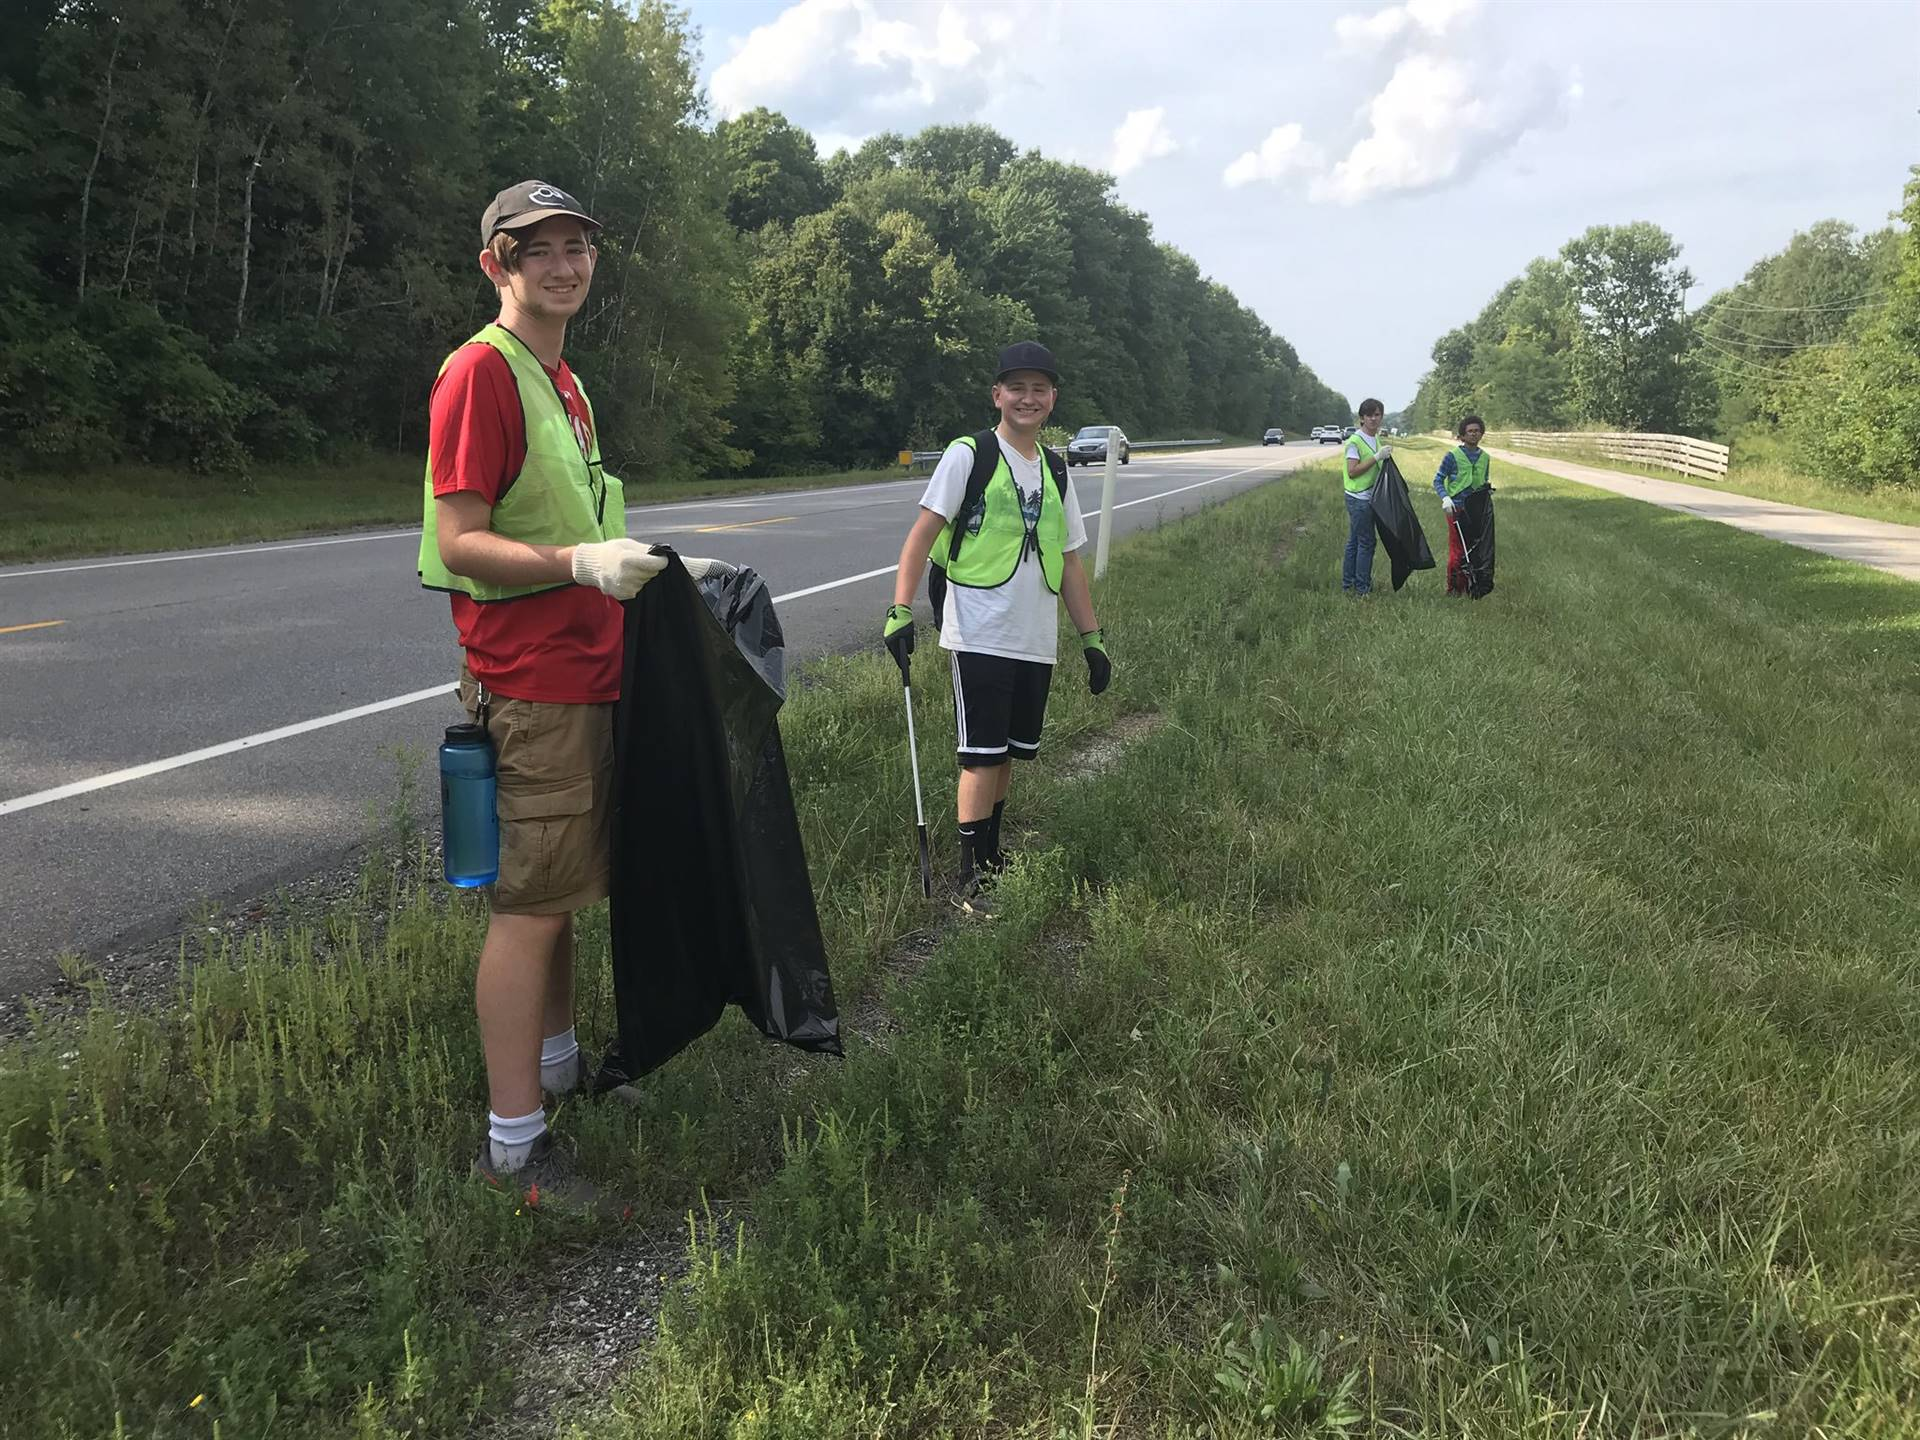 CHS students engaged in community service - cleanup on Route 44.